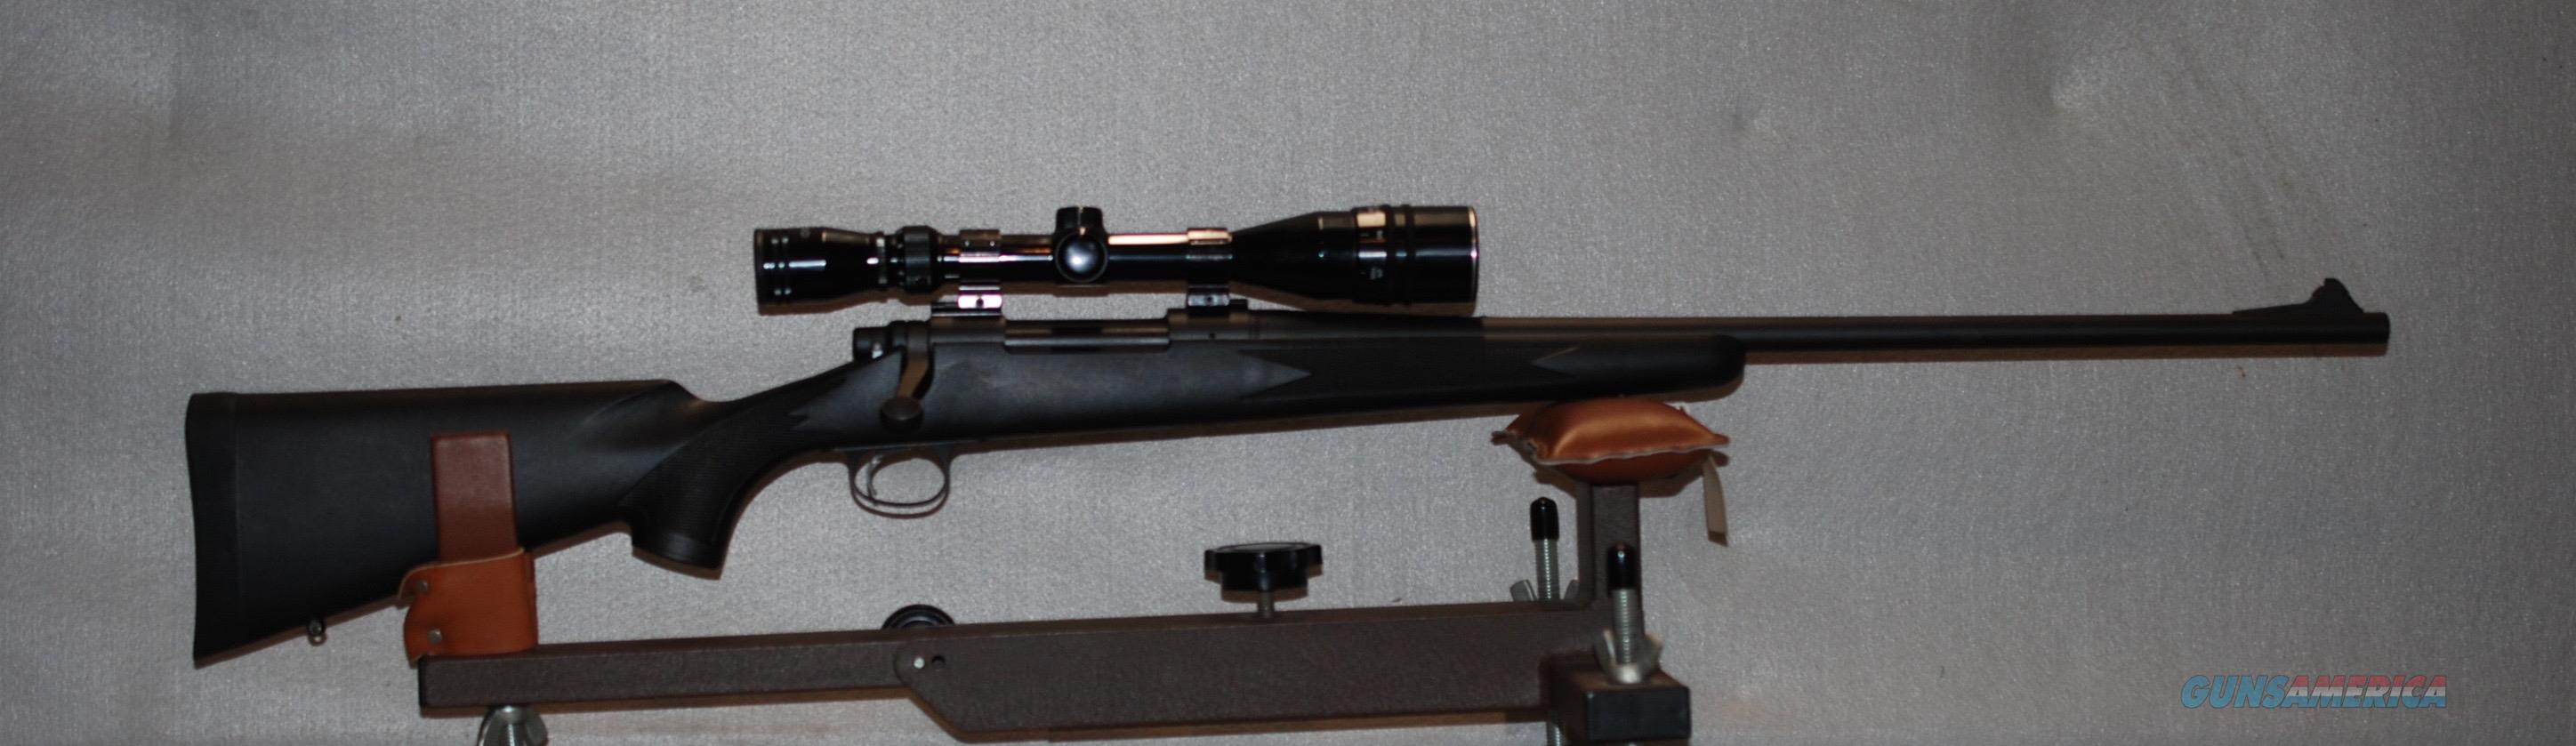 Remington 700, 7mm Mag.  Guns > Rifles > Remington Rifles - Modern > Model 700 > Sporting